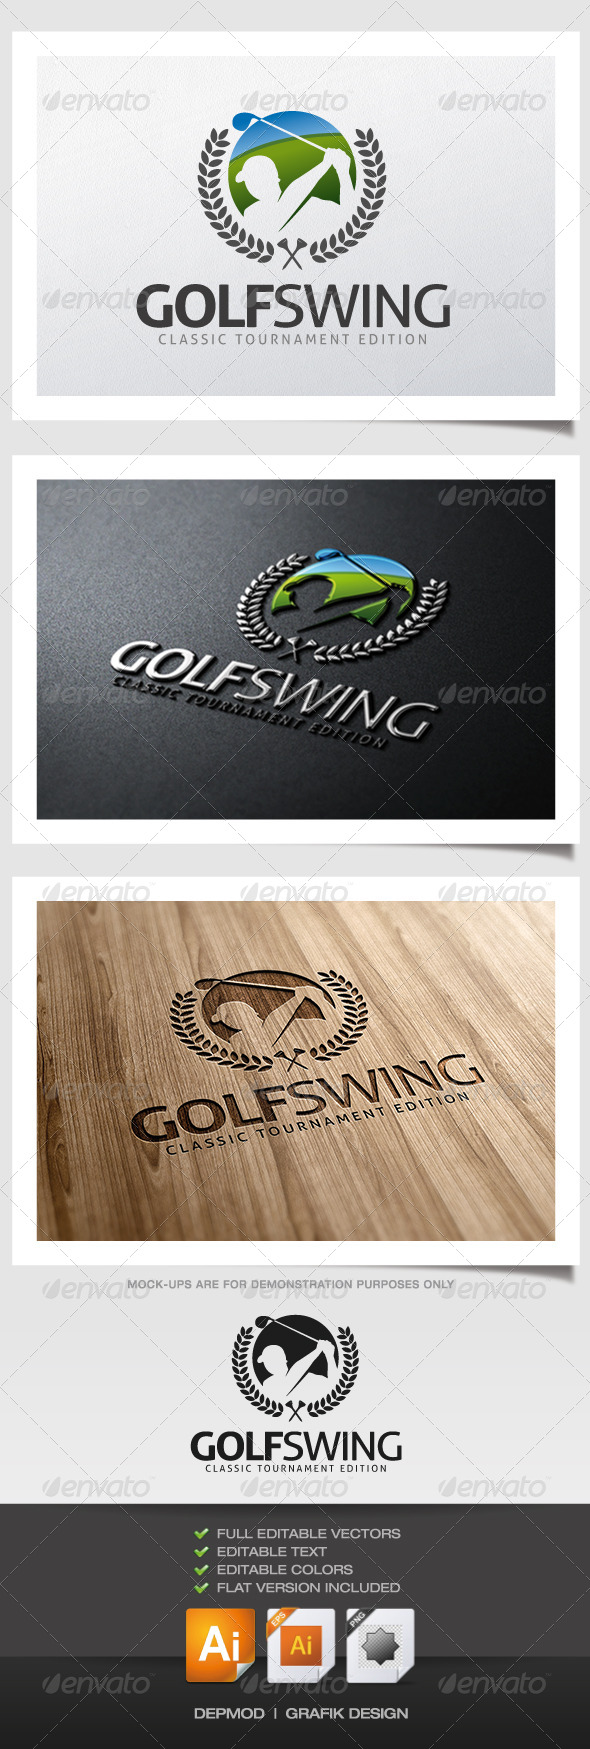 GraphicRiver Golf Swing Logo 6067946